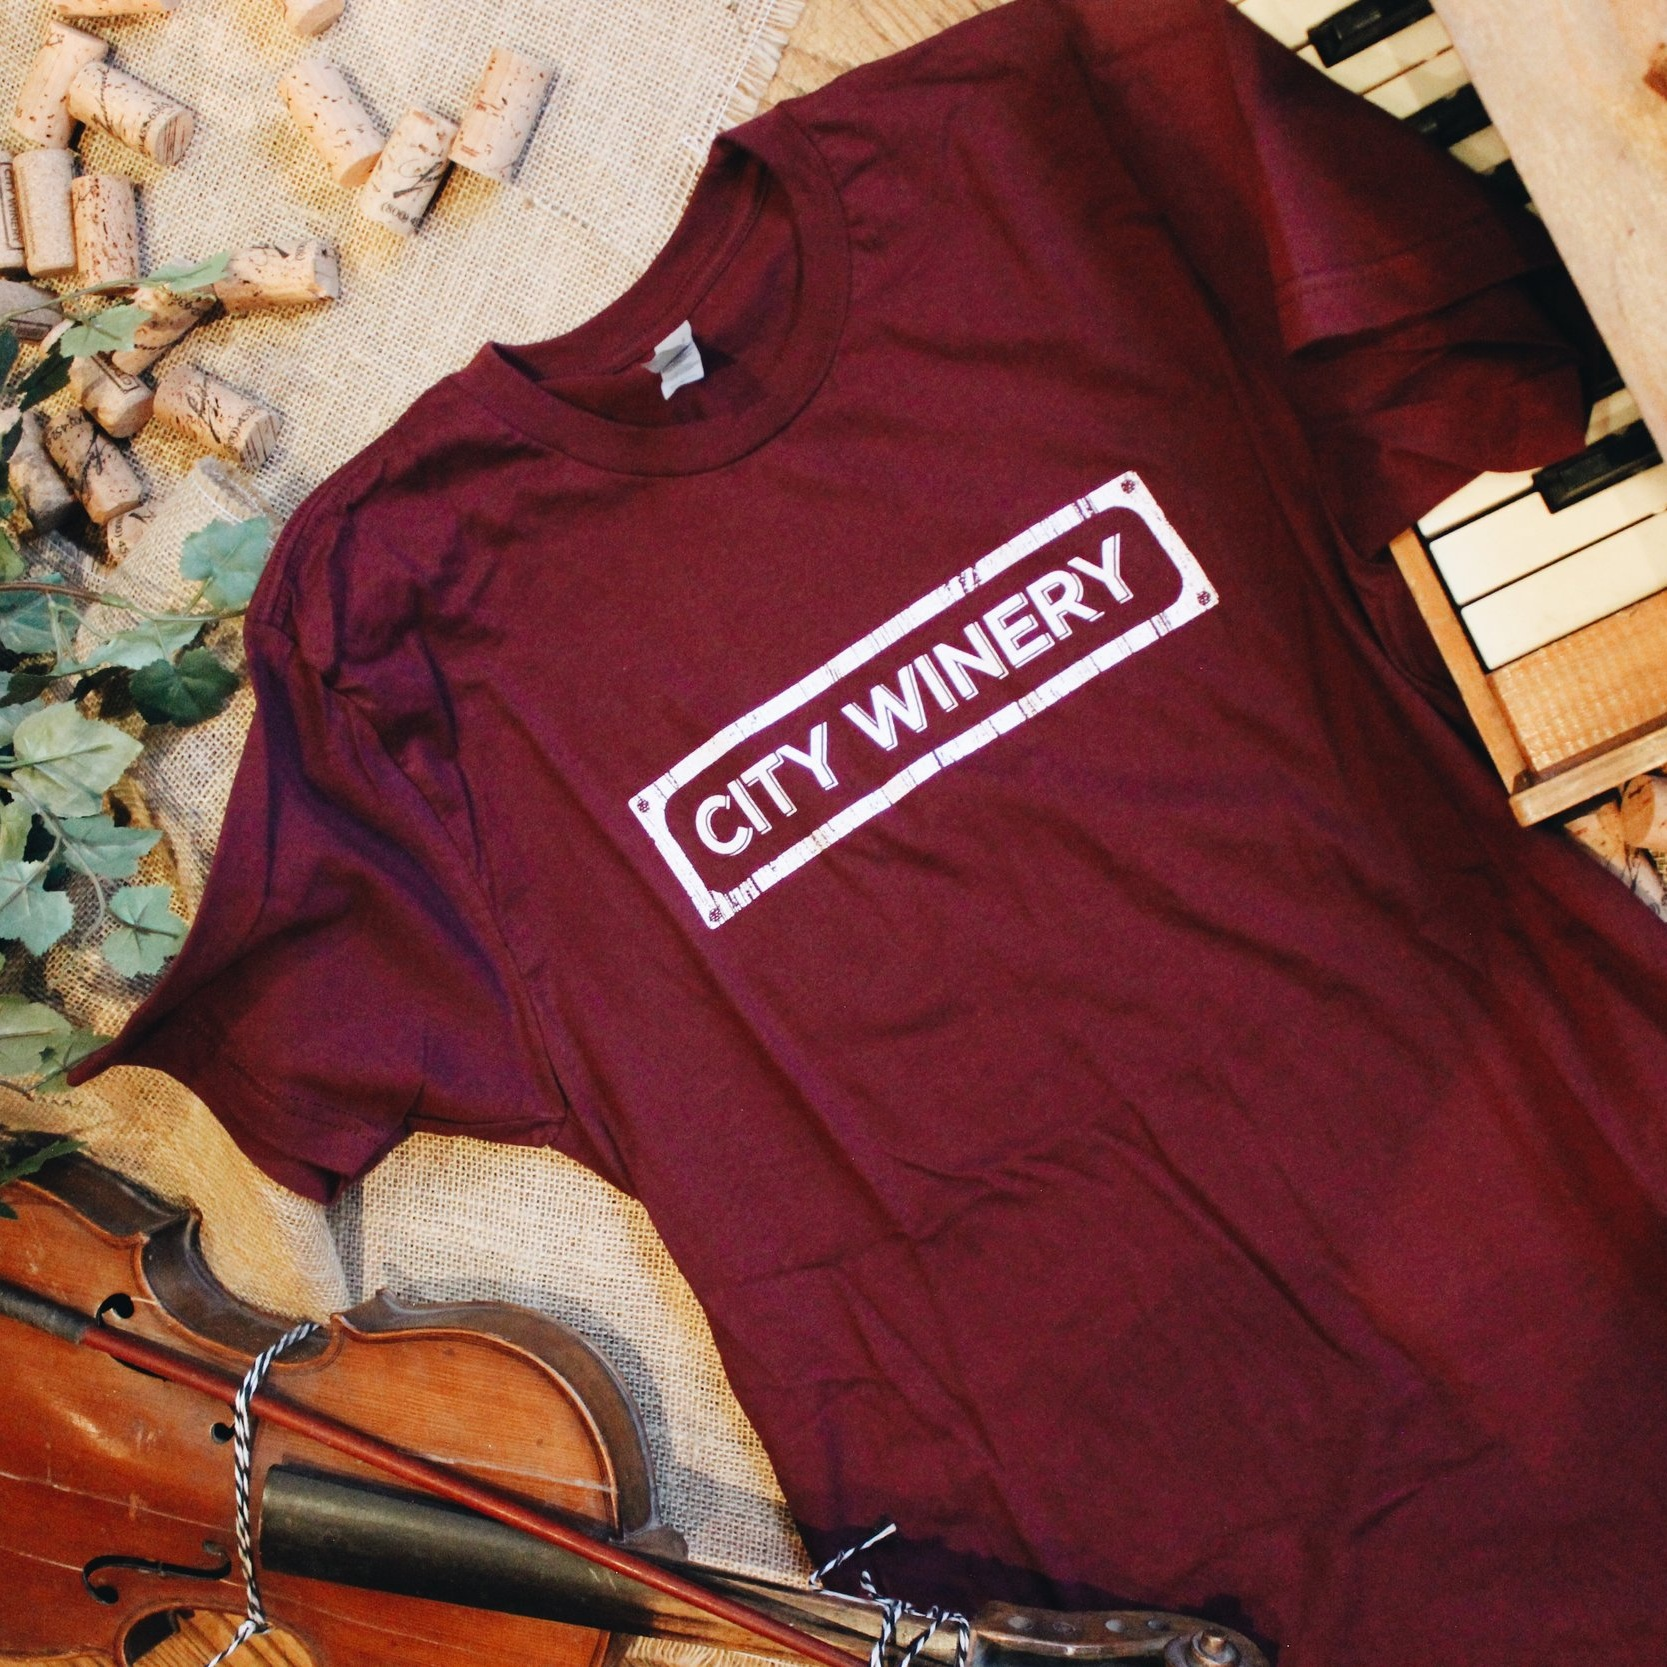 City Winery Logo Red T-Shirt - Rep the City Winery brand with this comfortable, relaxed cotton t-shirt with a rounded neck, red wine color and short sleeves. Fits true to adult sizing.